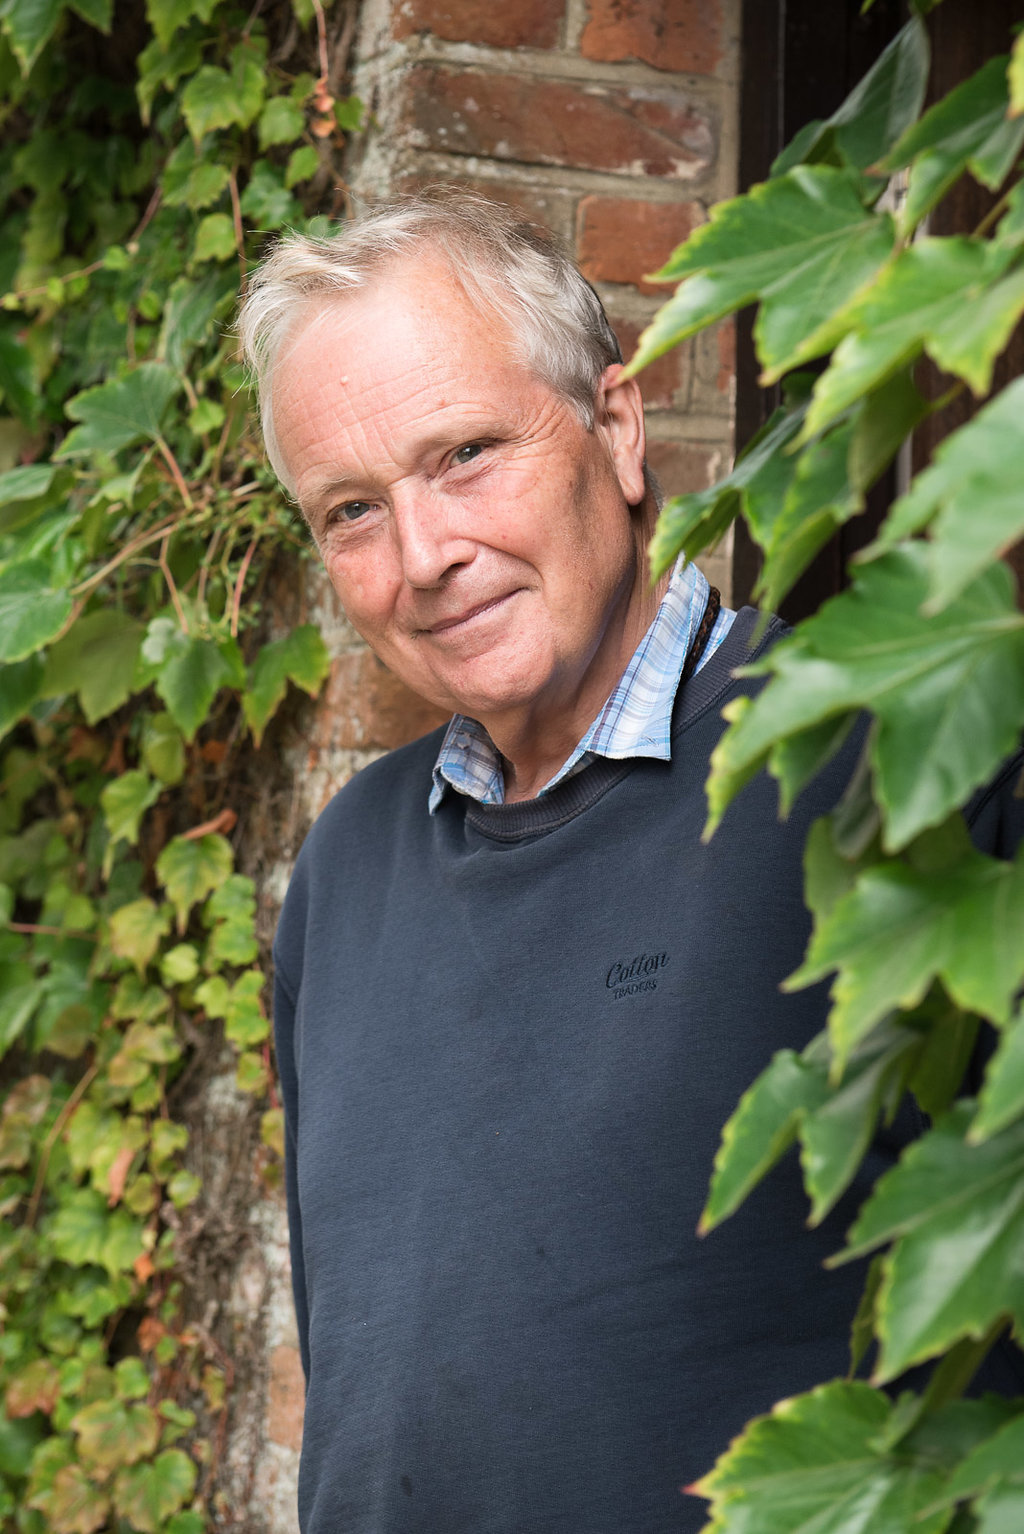 Christopher - A true pioneer of fish farming, Christopher has grown high quality trout on the Test and Itchen for over 40 years. He not only designed and built the farms, but developed the unique growing conditions that sets ChalkStream® trout apart.